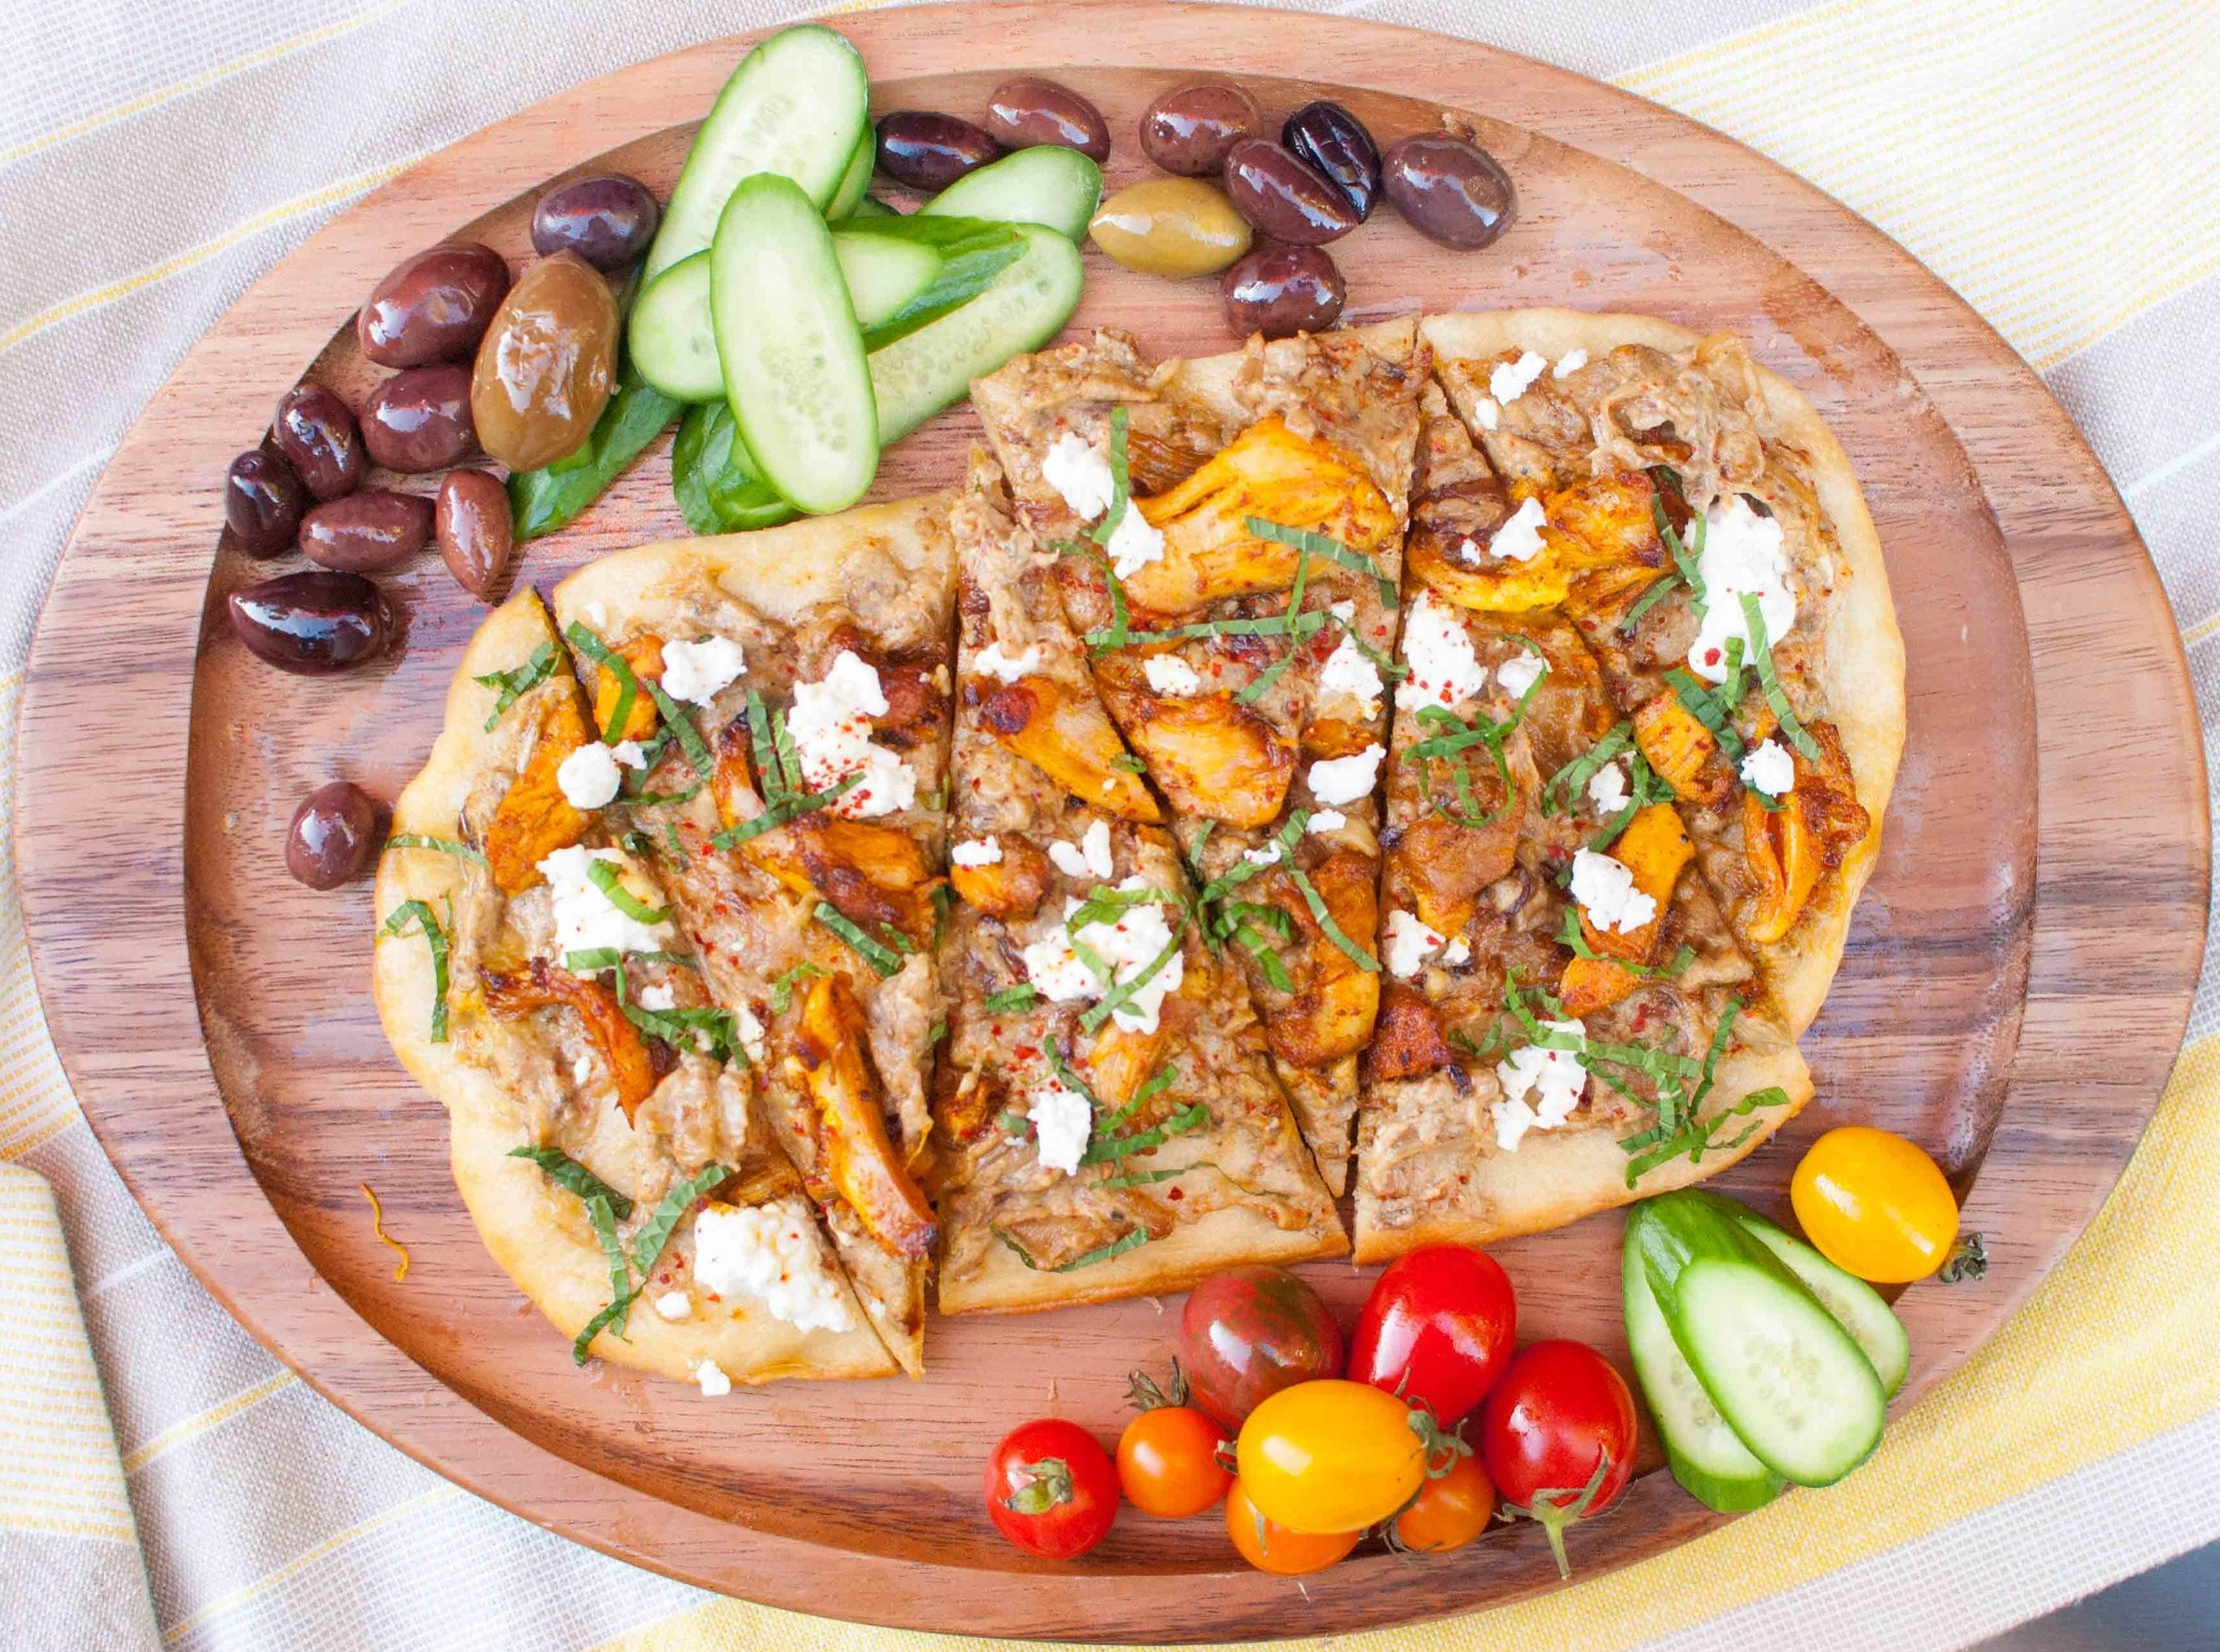 Flatbread with Chicken Shawarma and Eggplant Dip with Caramelized Onions